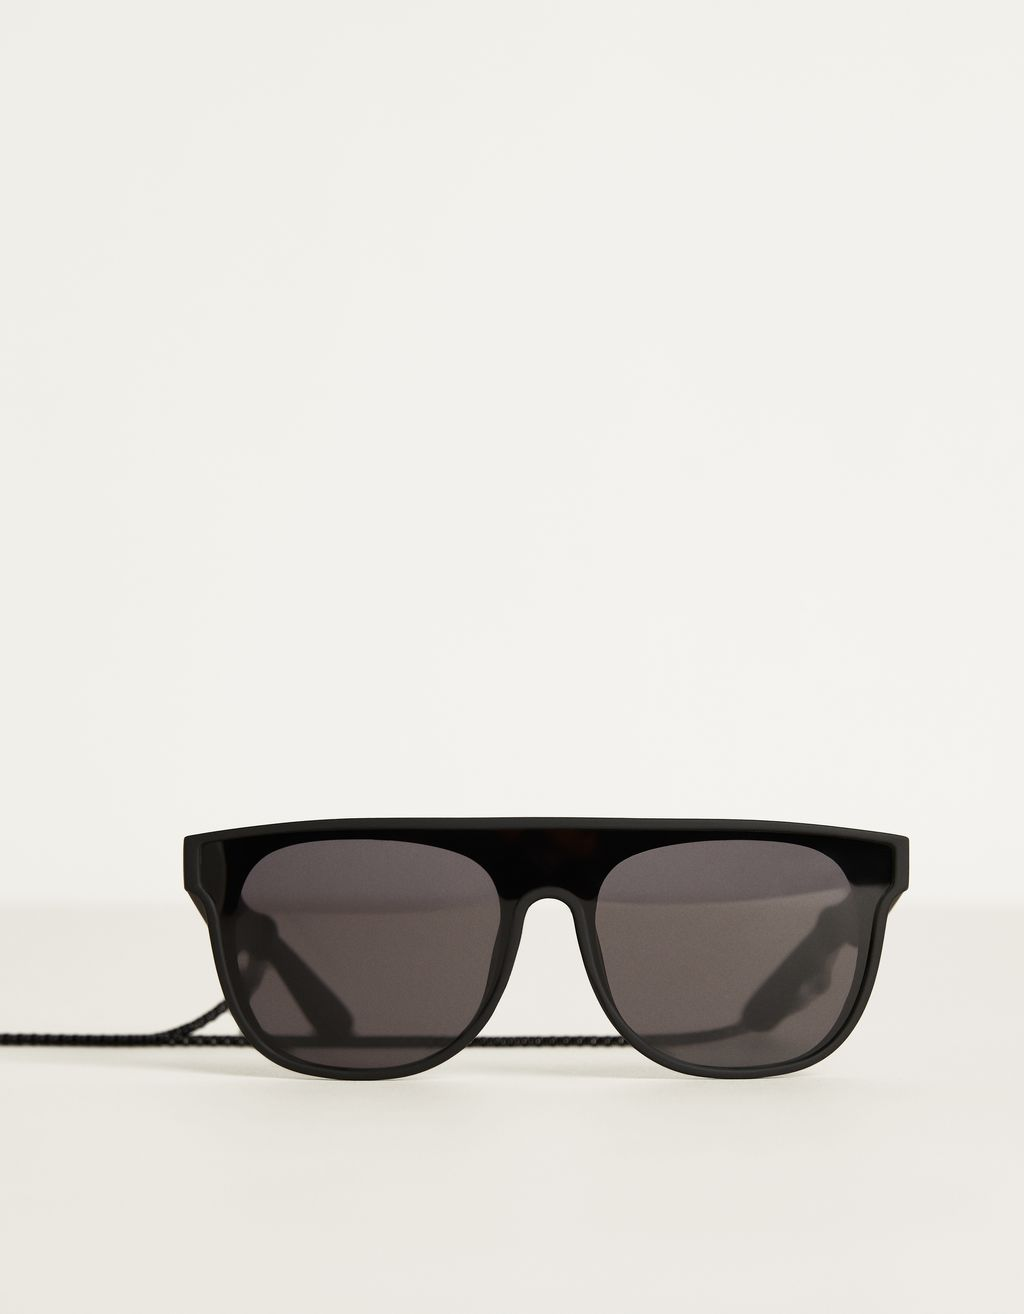 Sunglasses with frame detail